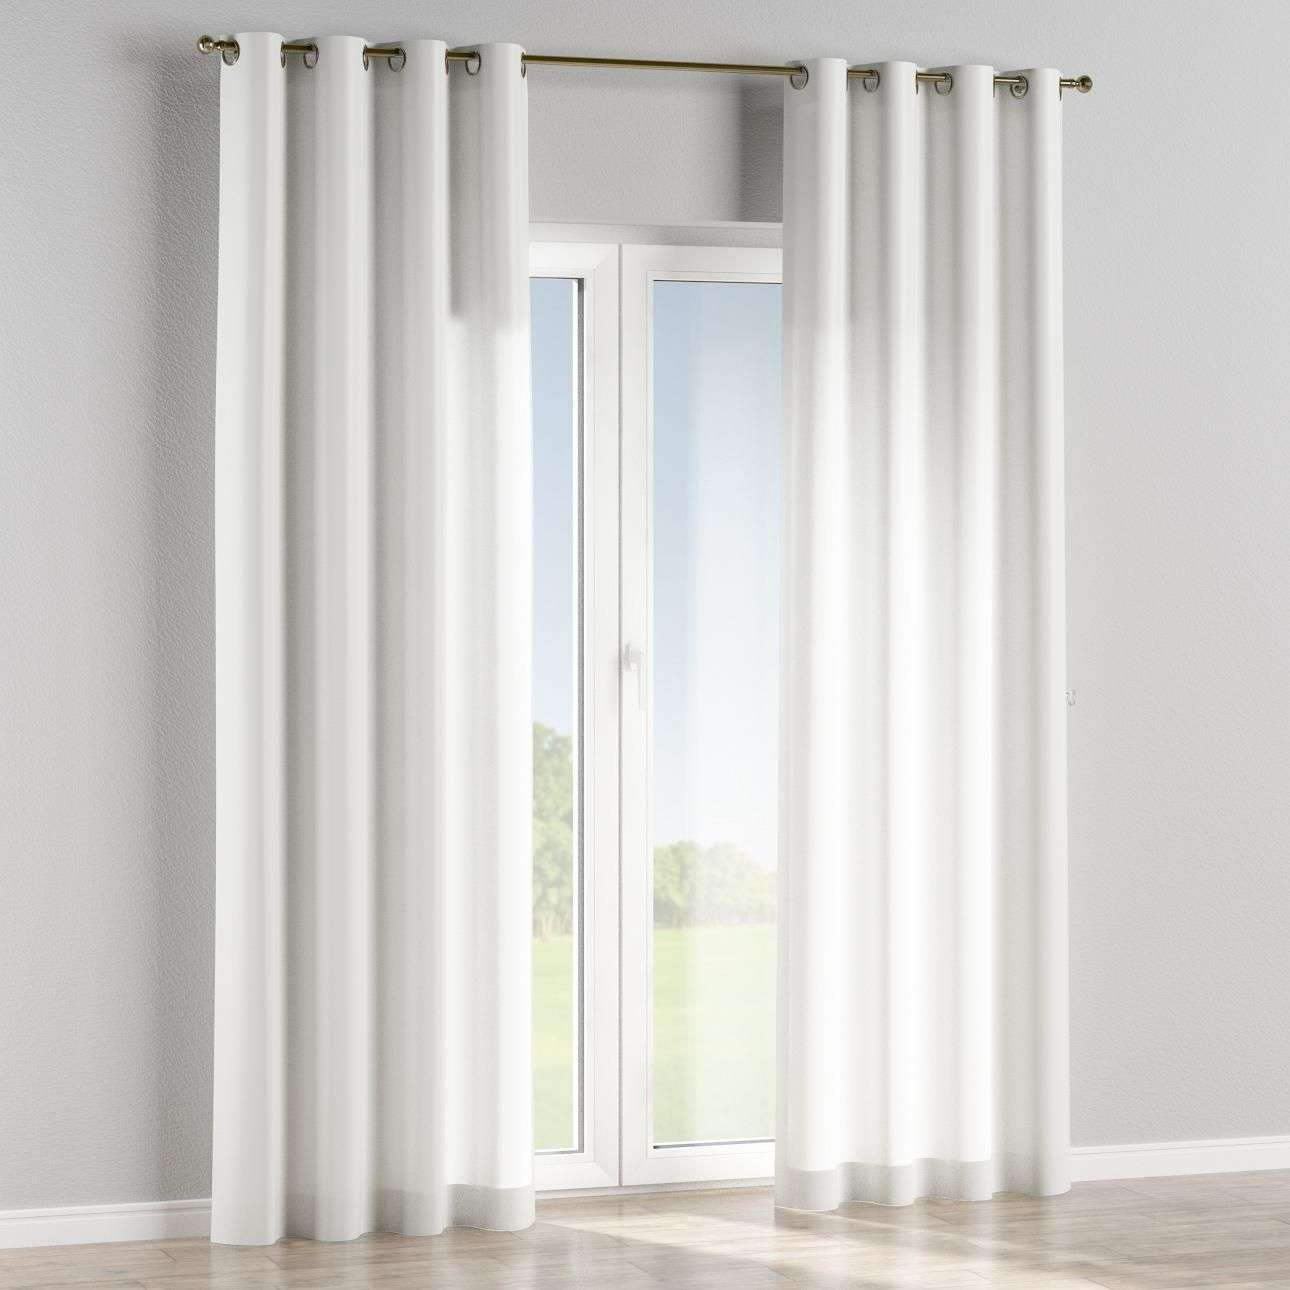 Eyelet lined curtains in collection Londres, fabric: 140-43